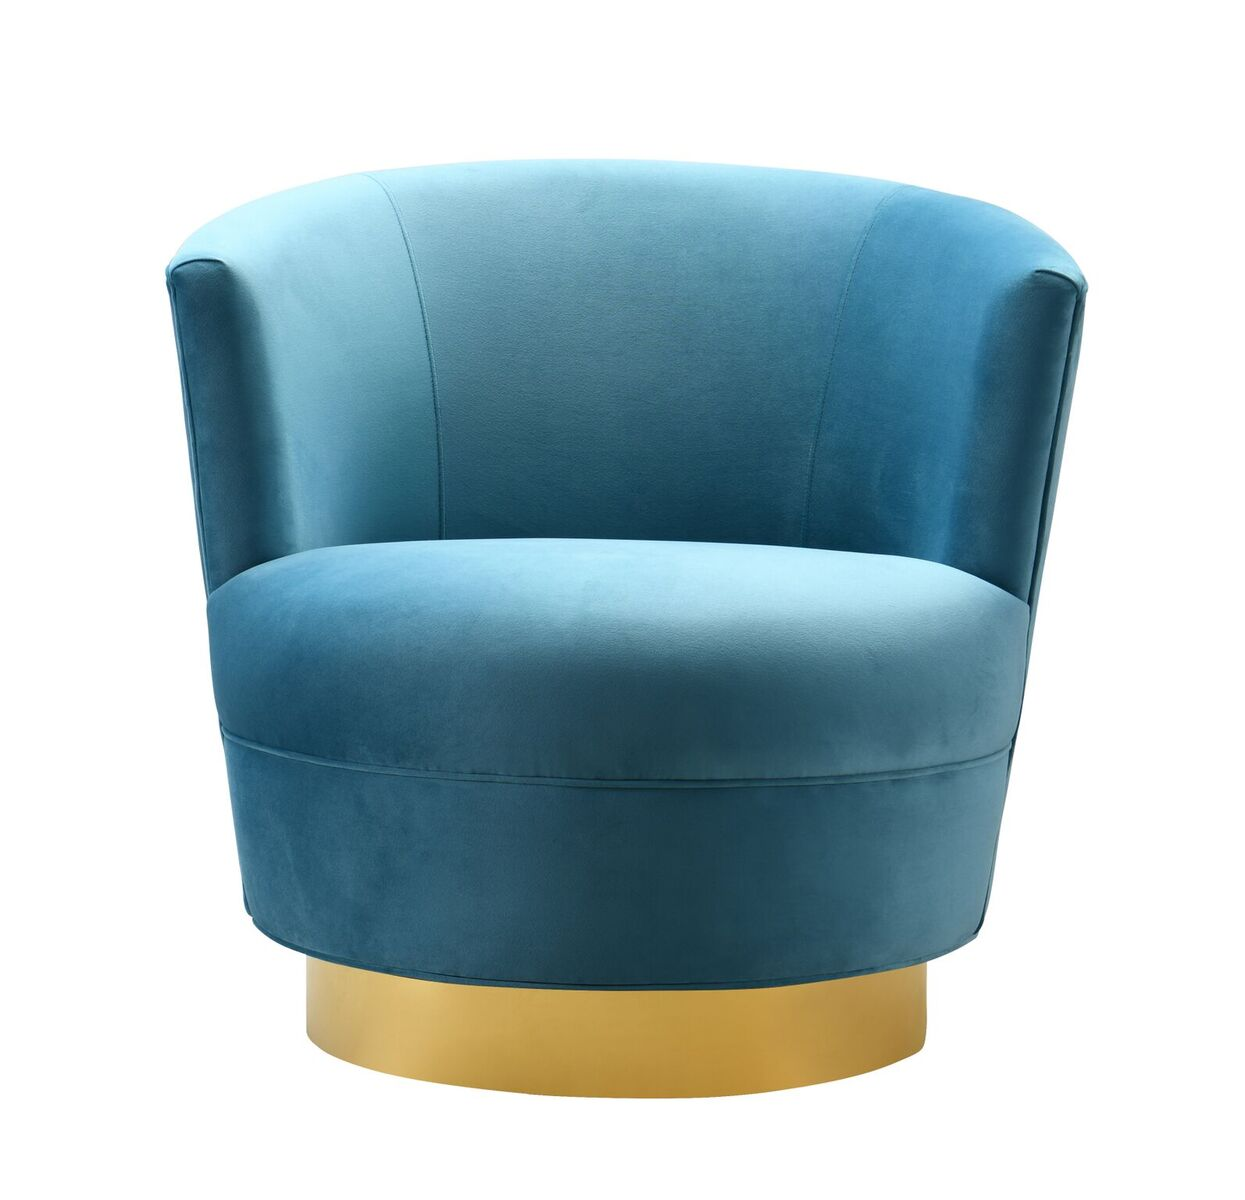 Prime Noah Lake Blue Swivel Chair By Tov Furniture Unemploymentrelief Wooden Chair Designs For Living Room Unemploymentrelieforg